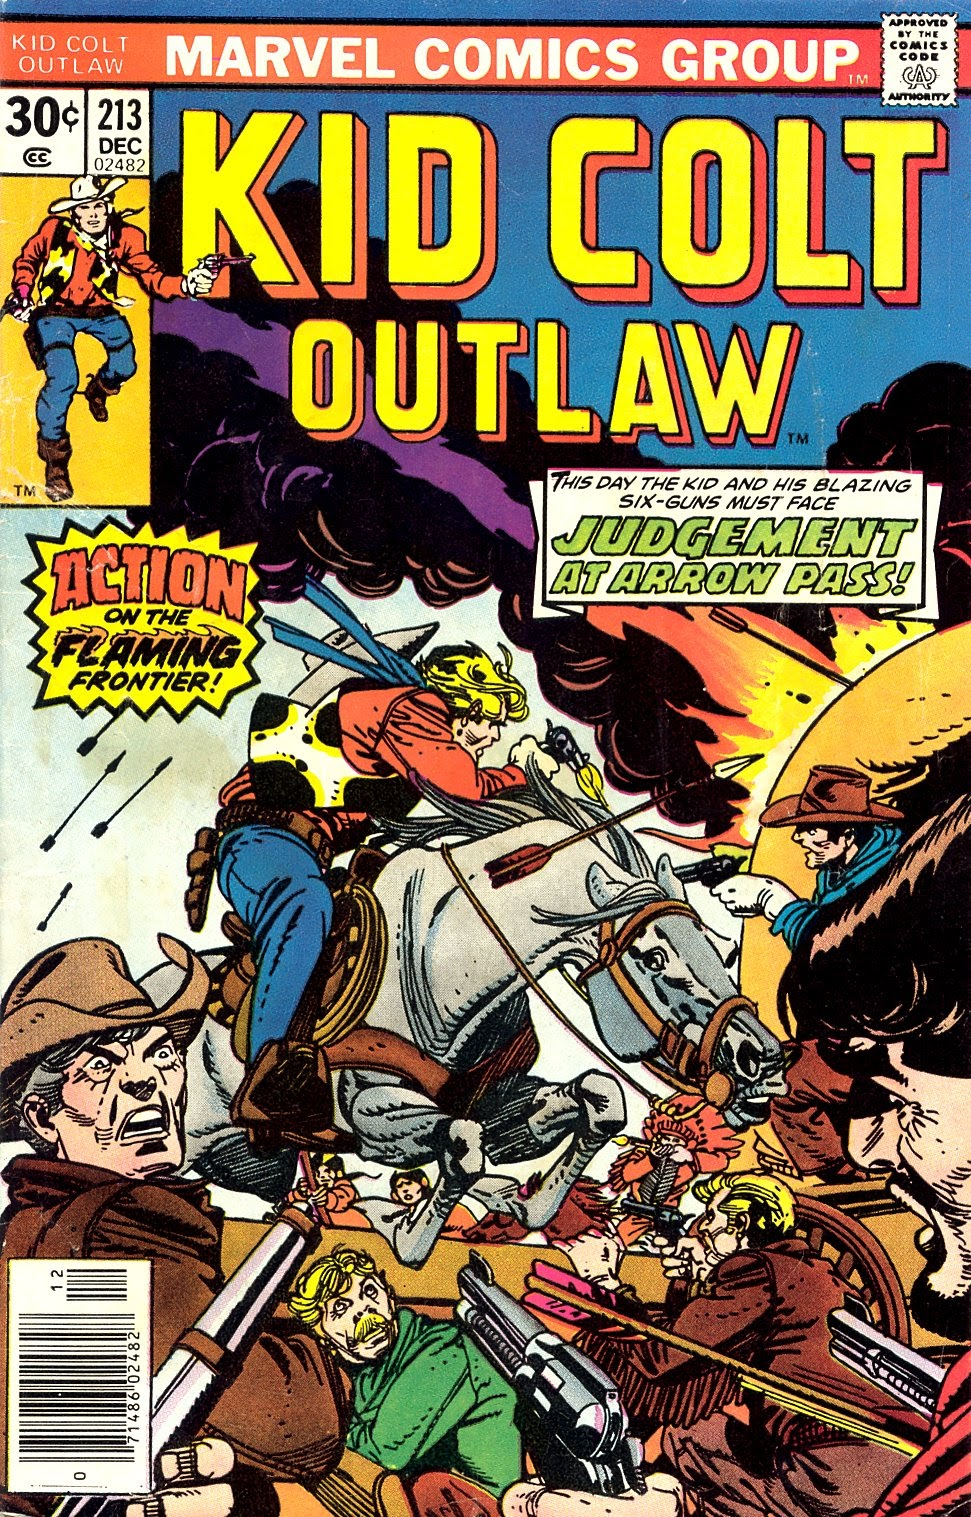 Kid Colt Outlaw issue 213 - Page 1